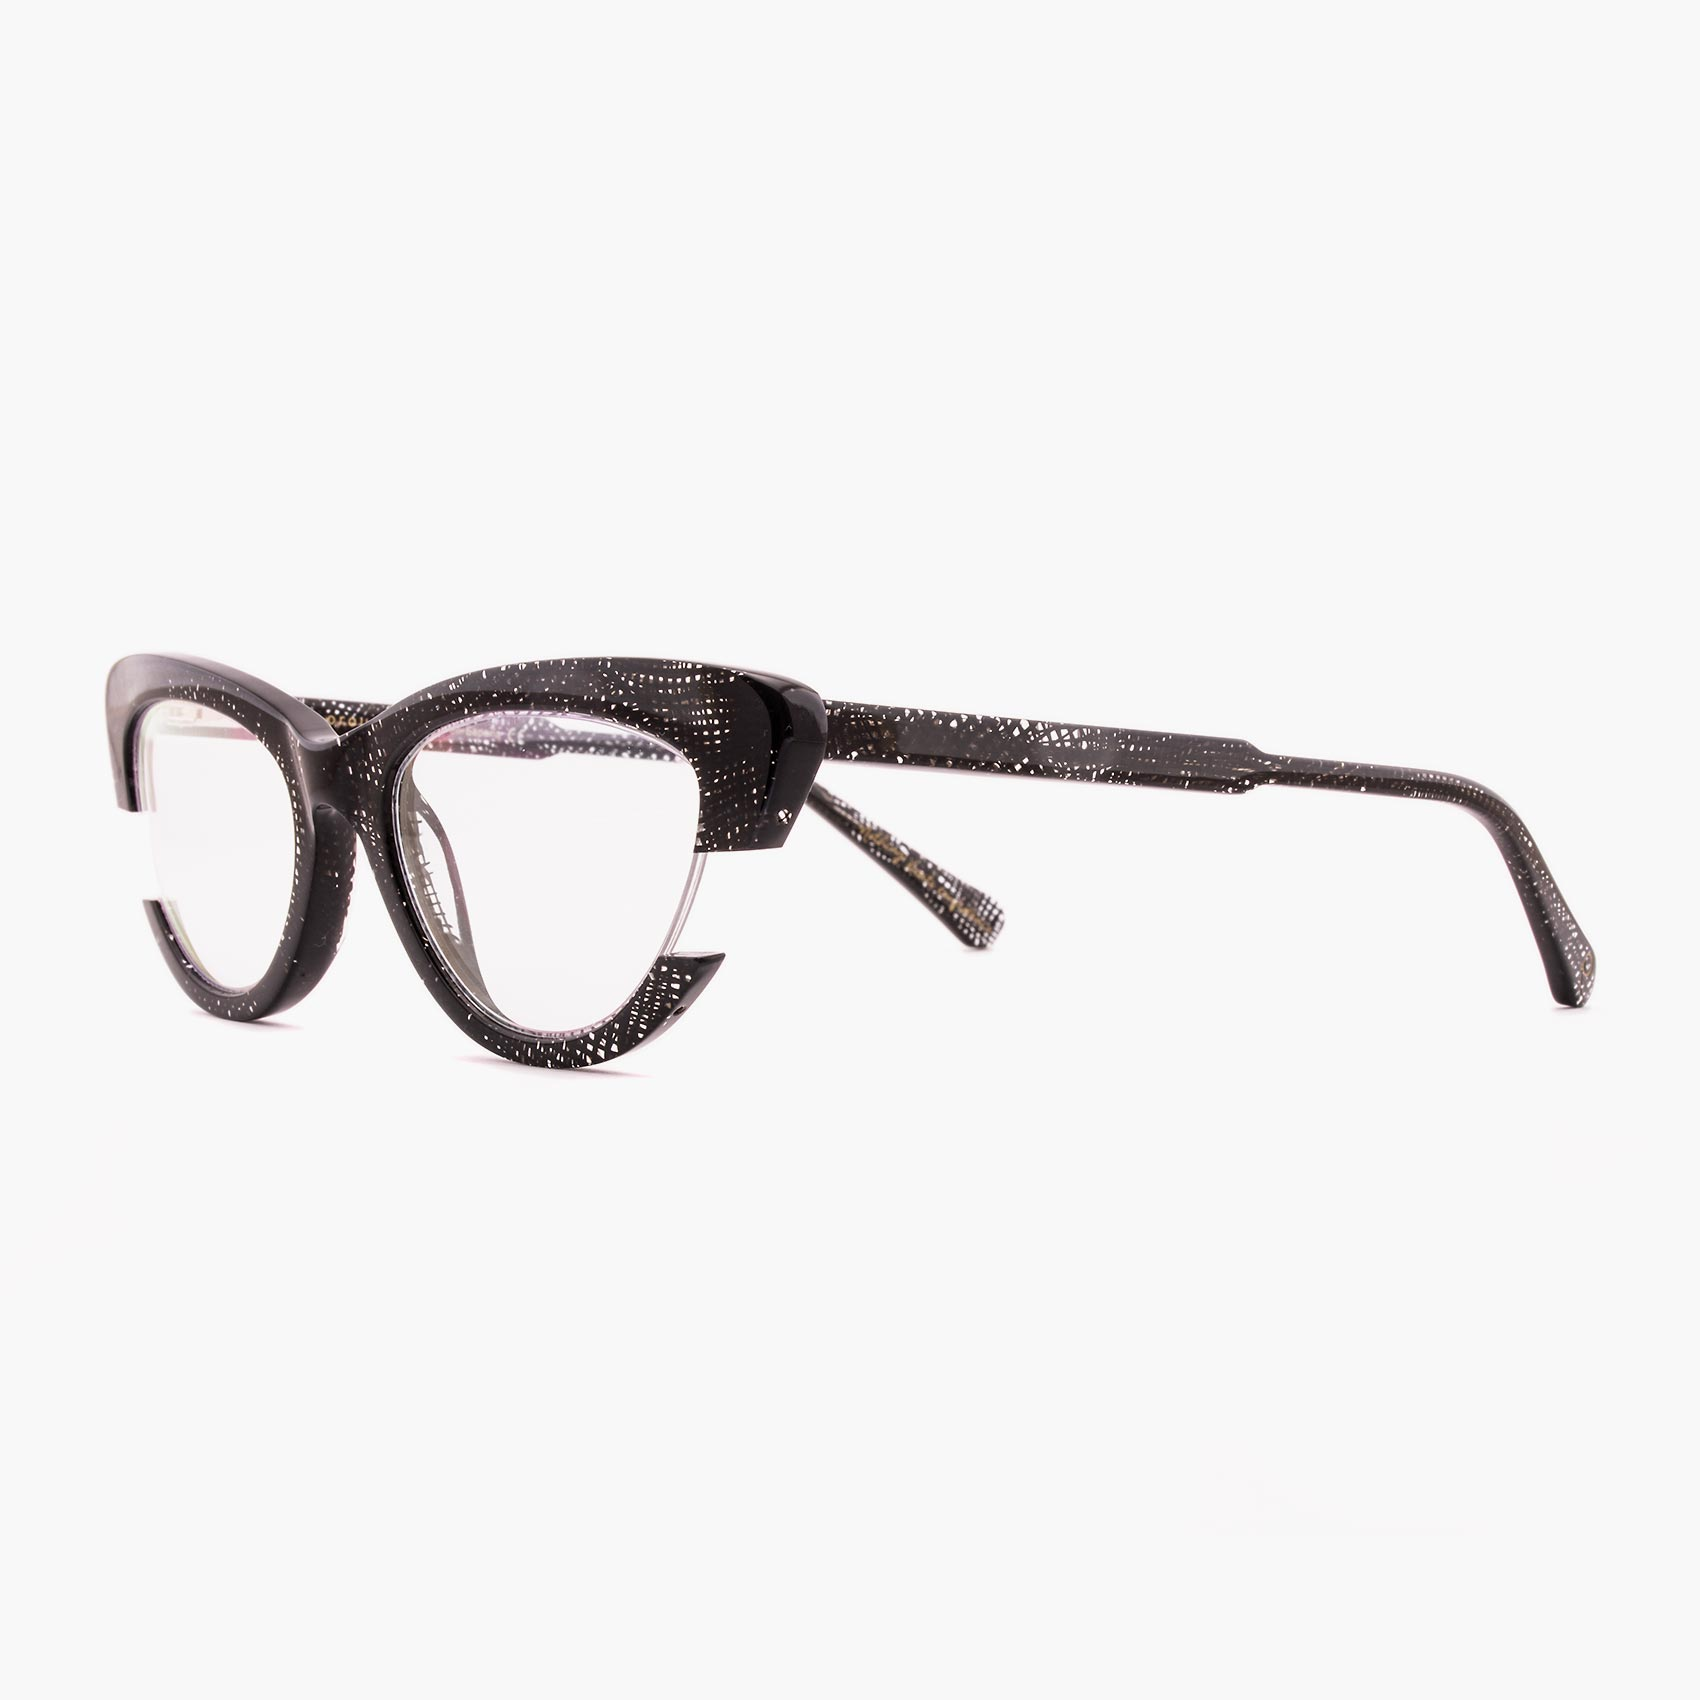 Proud eyewear Jennifer C1 L montura gafas mujer cat eye